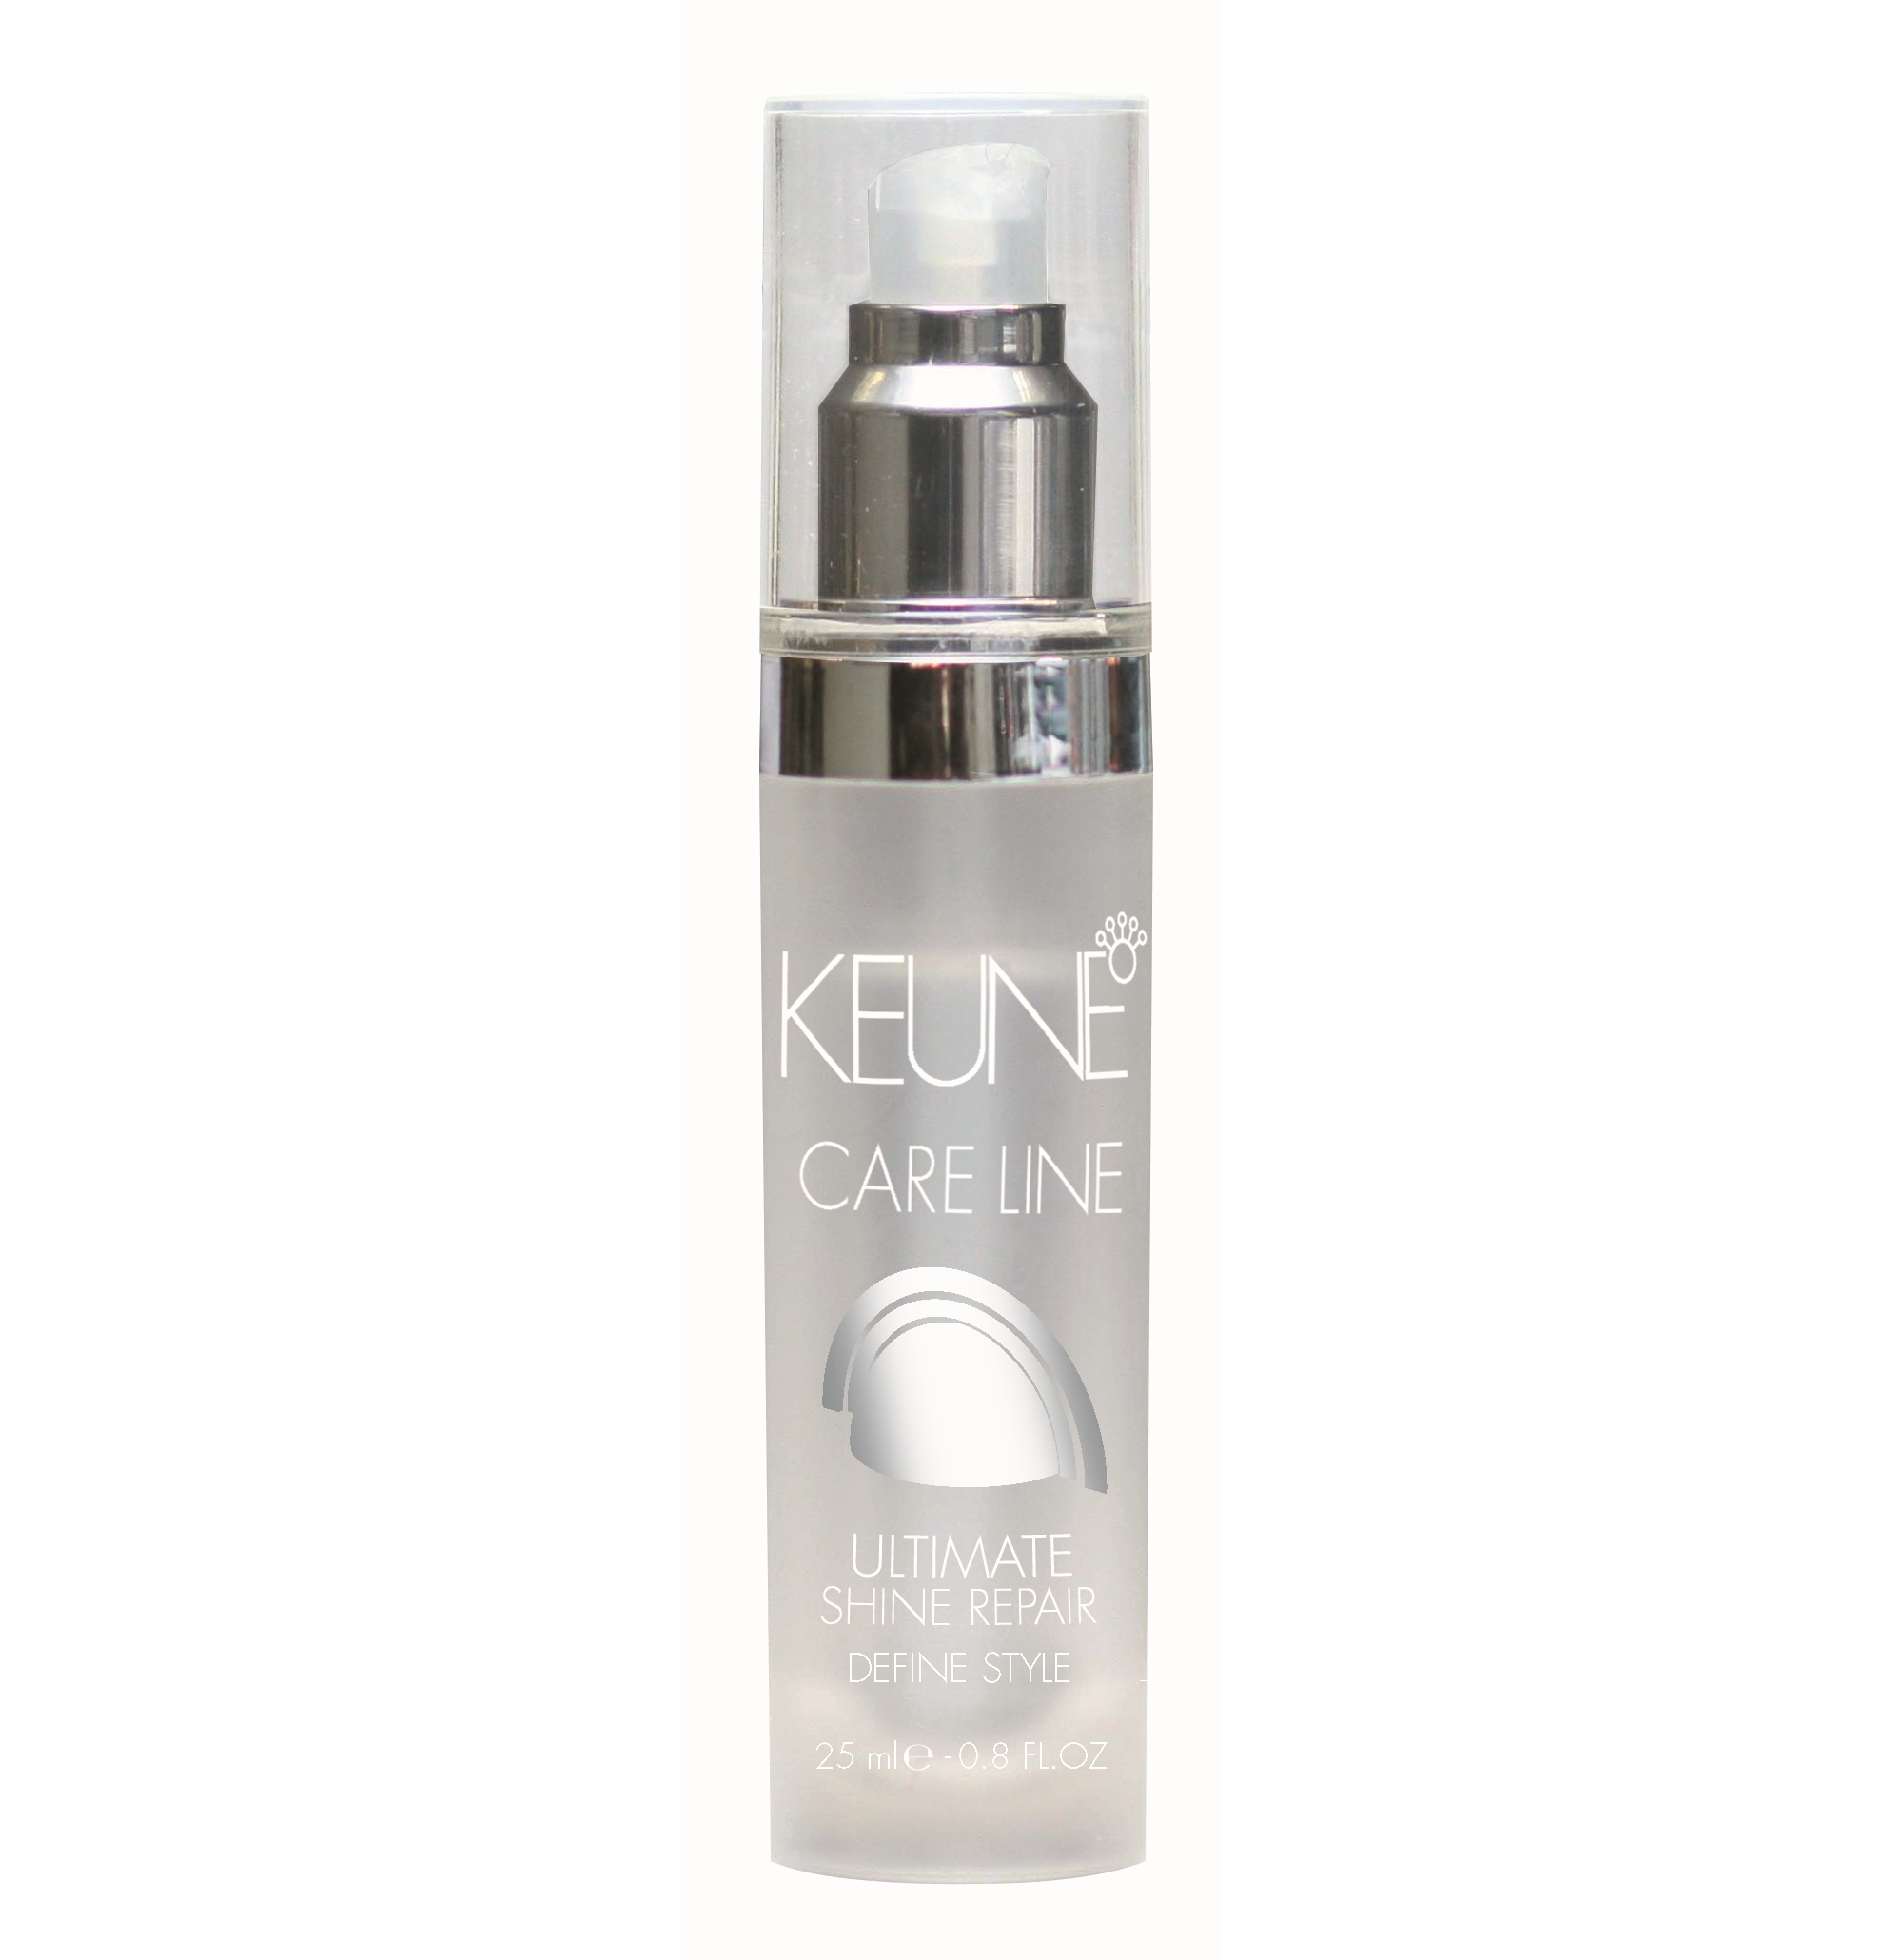 KEUNE Блеск-восстановитель Кэе Лайн / CARE LINE ULTIMATE SHINE REPAIR 25мл